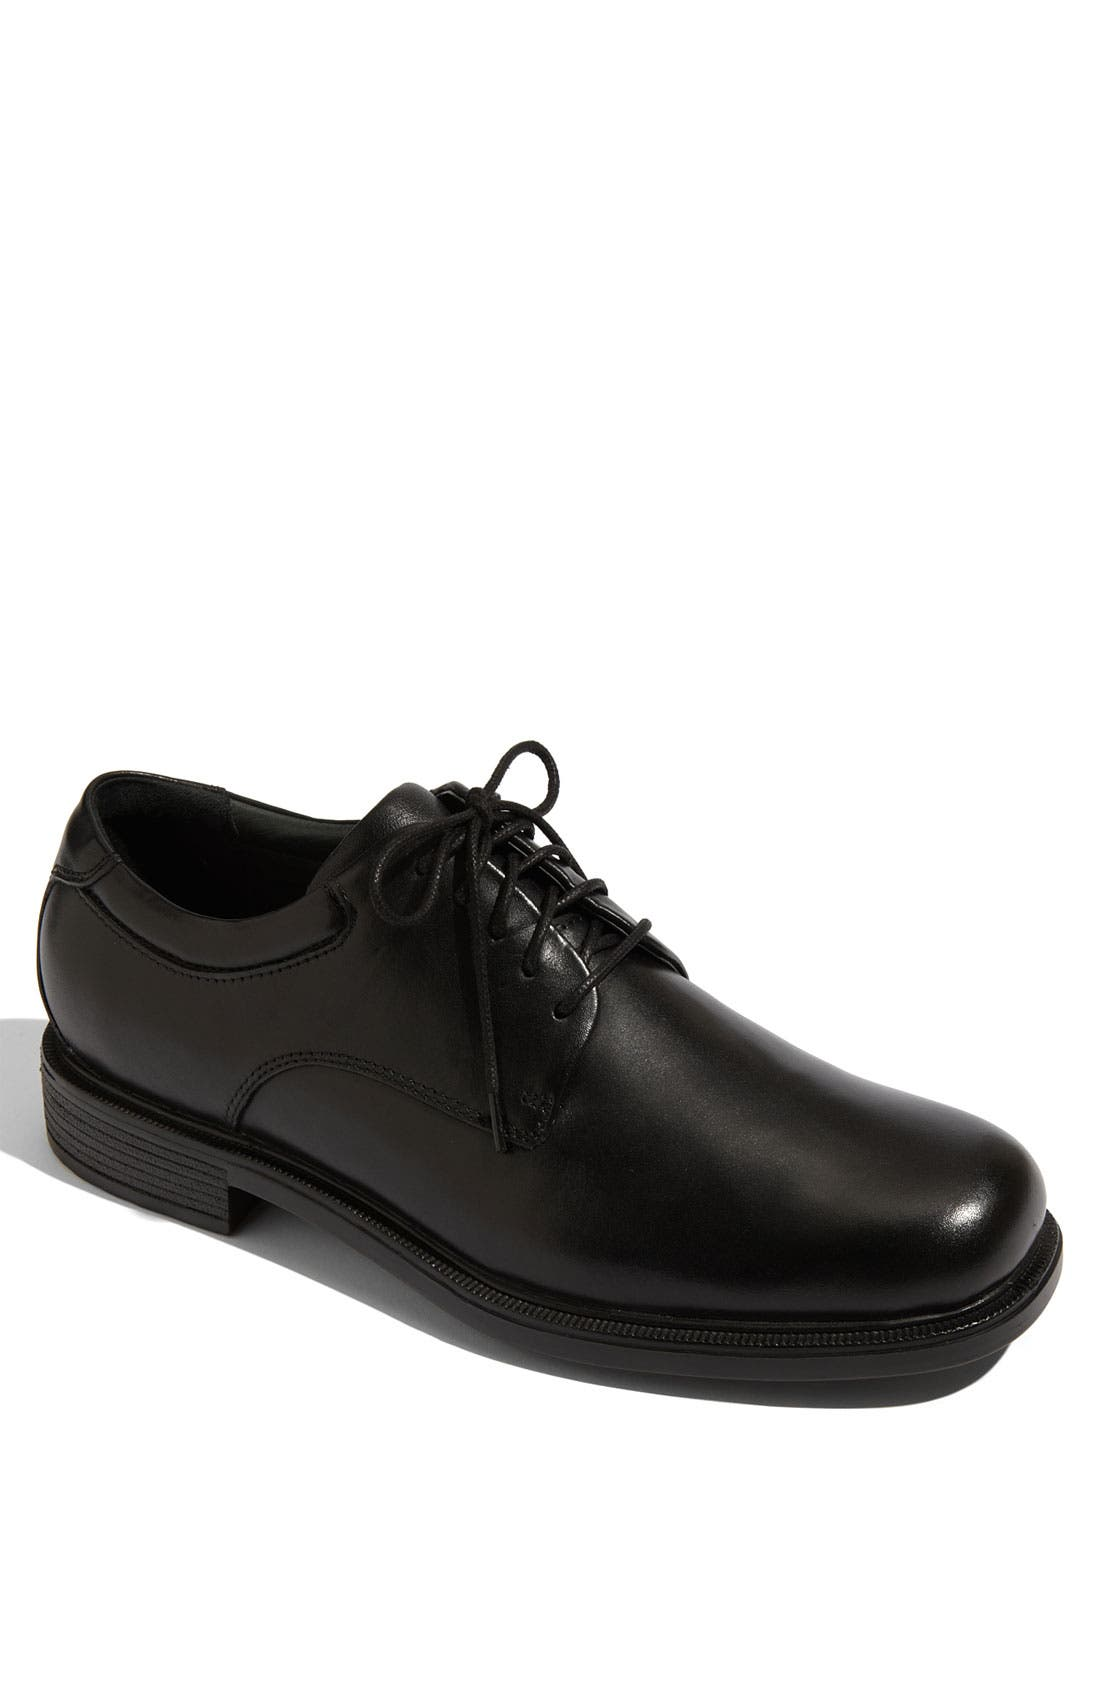 Rockport 'Margin' Oxford ...